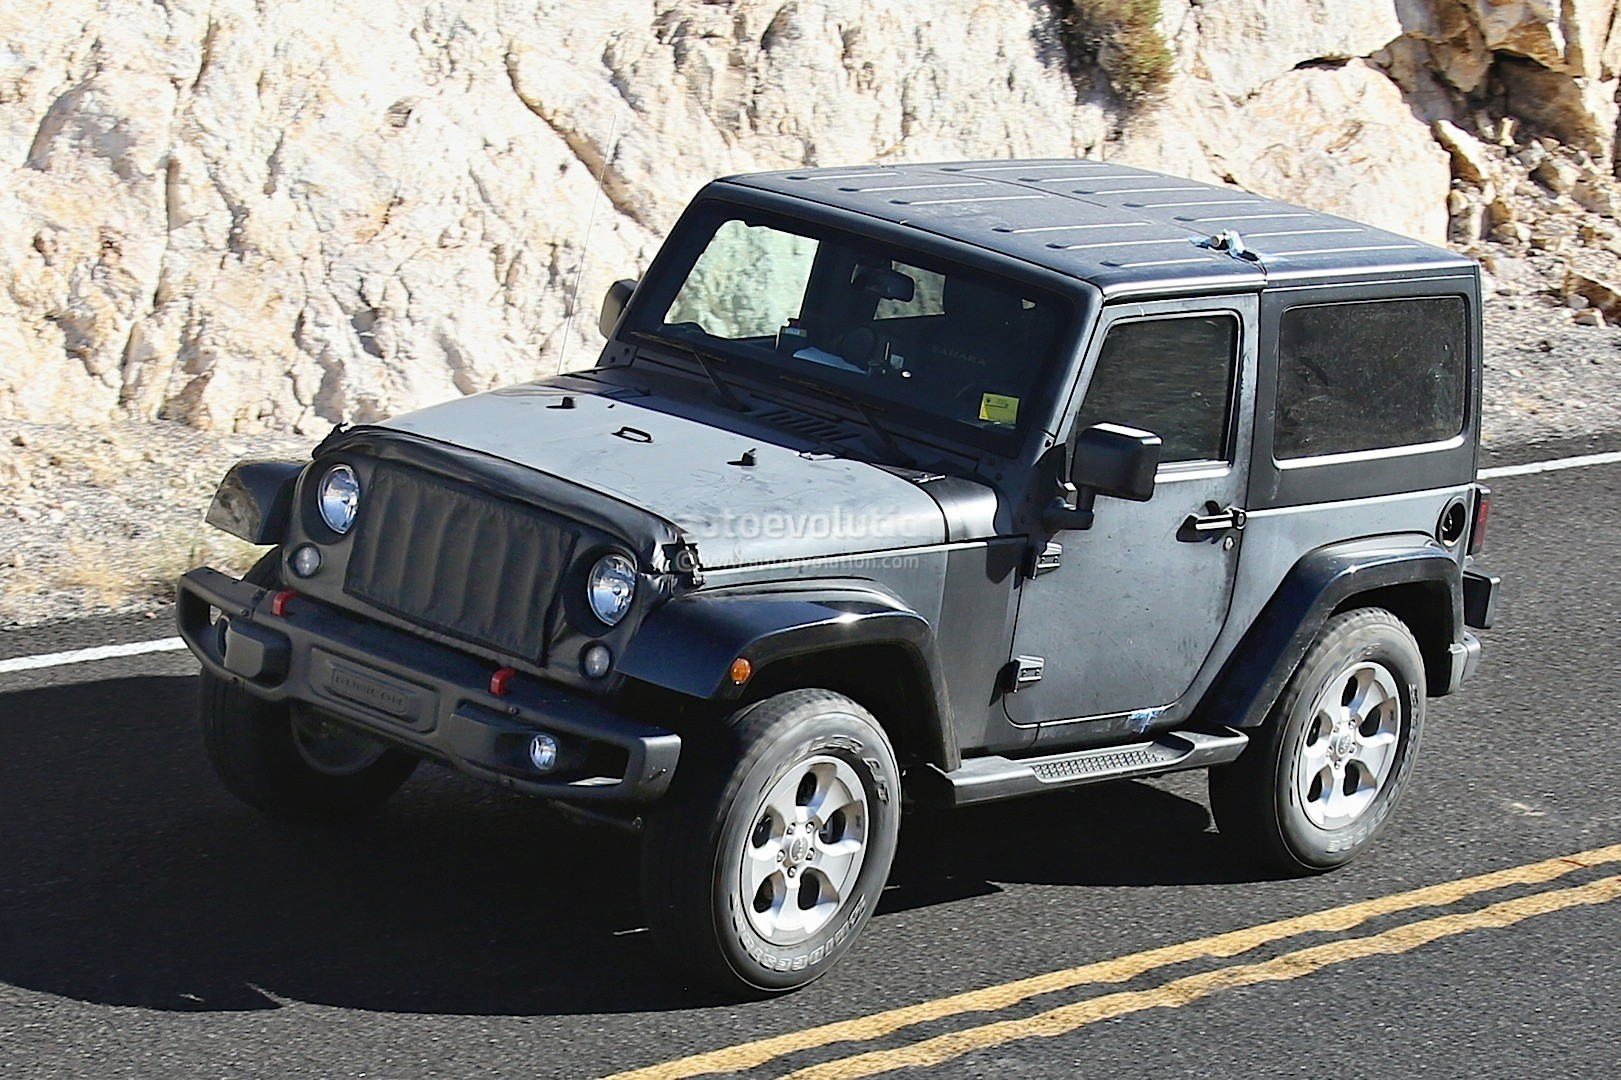 2018 Jeep Wrangler (JL) With Six-Speed Manual Transmission ...